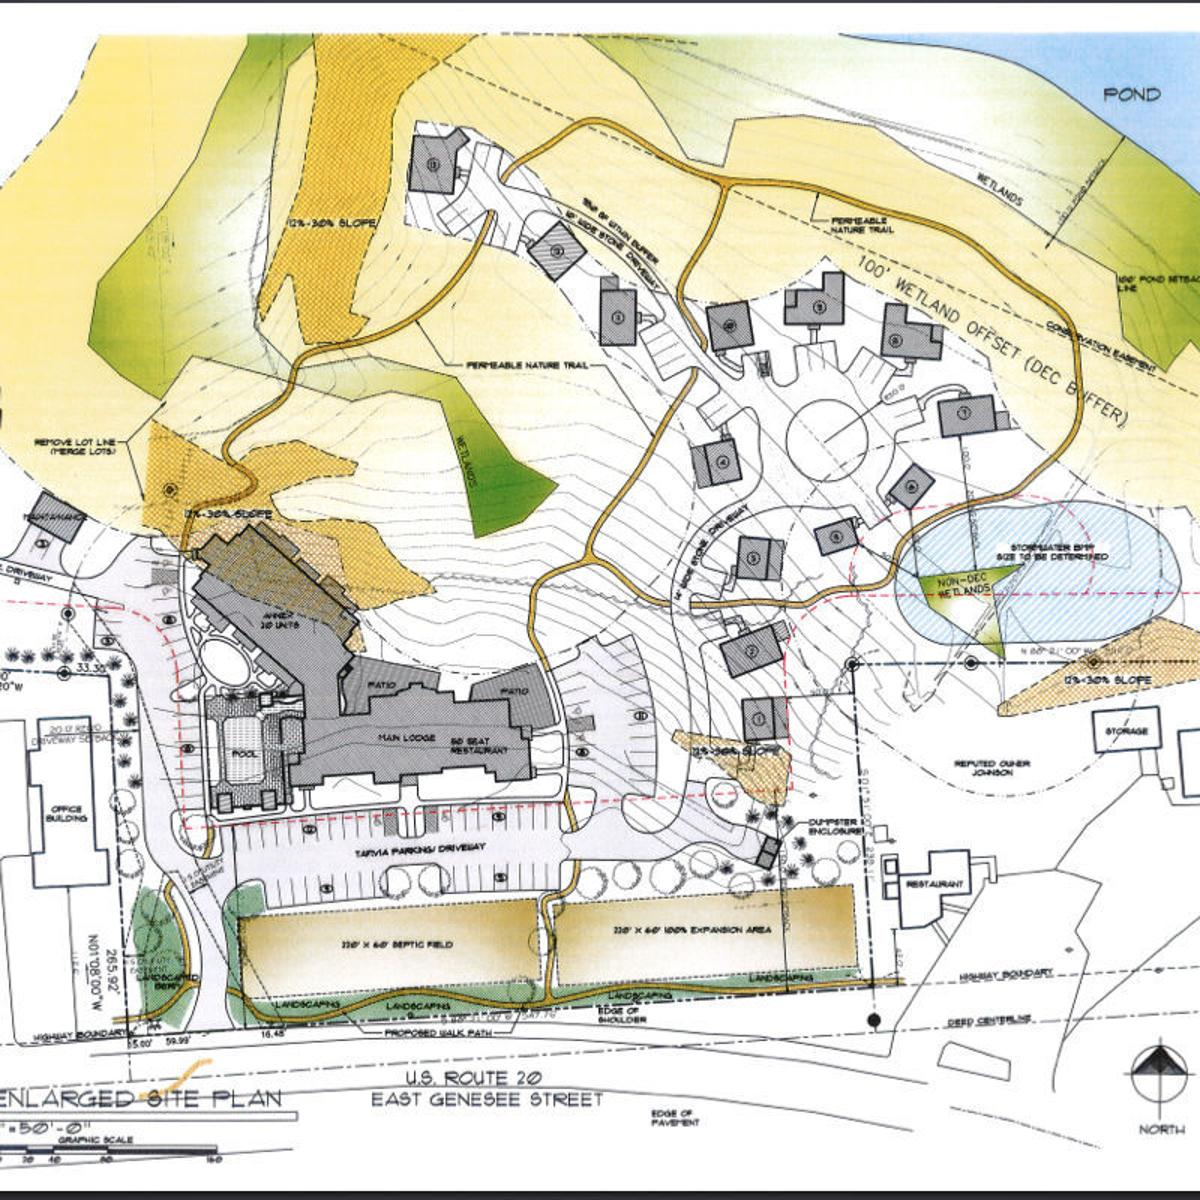 Skaneateles Town Planning Board approves sketch plan for